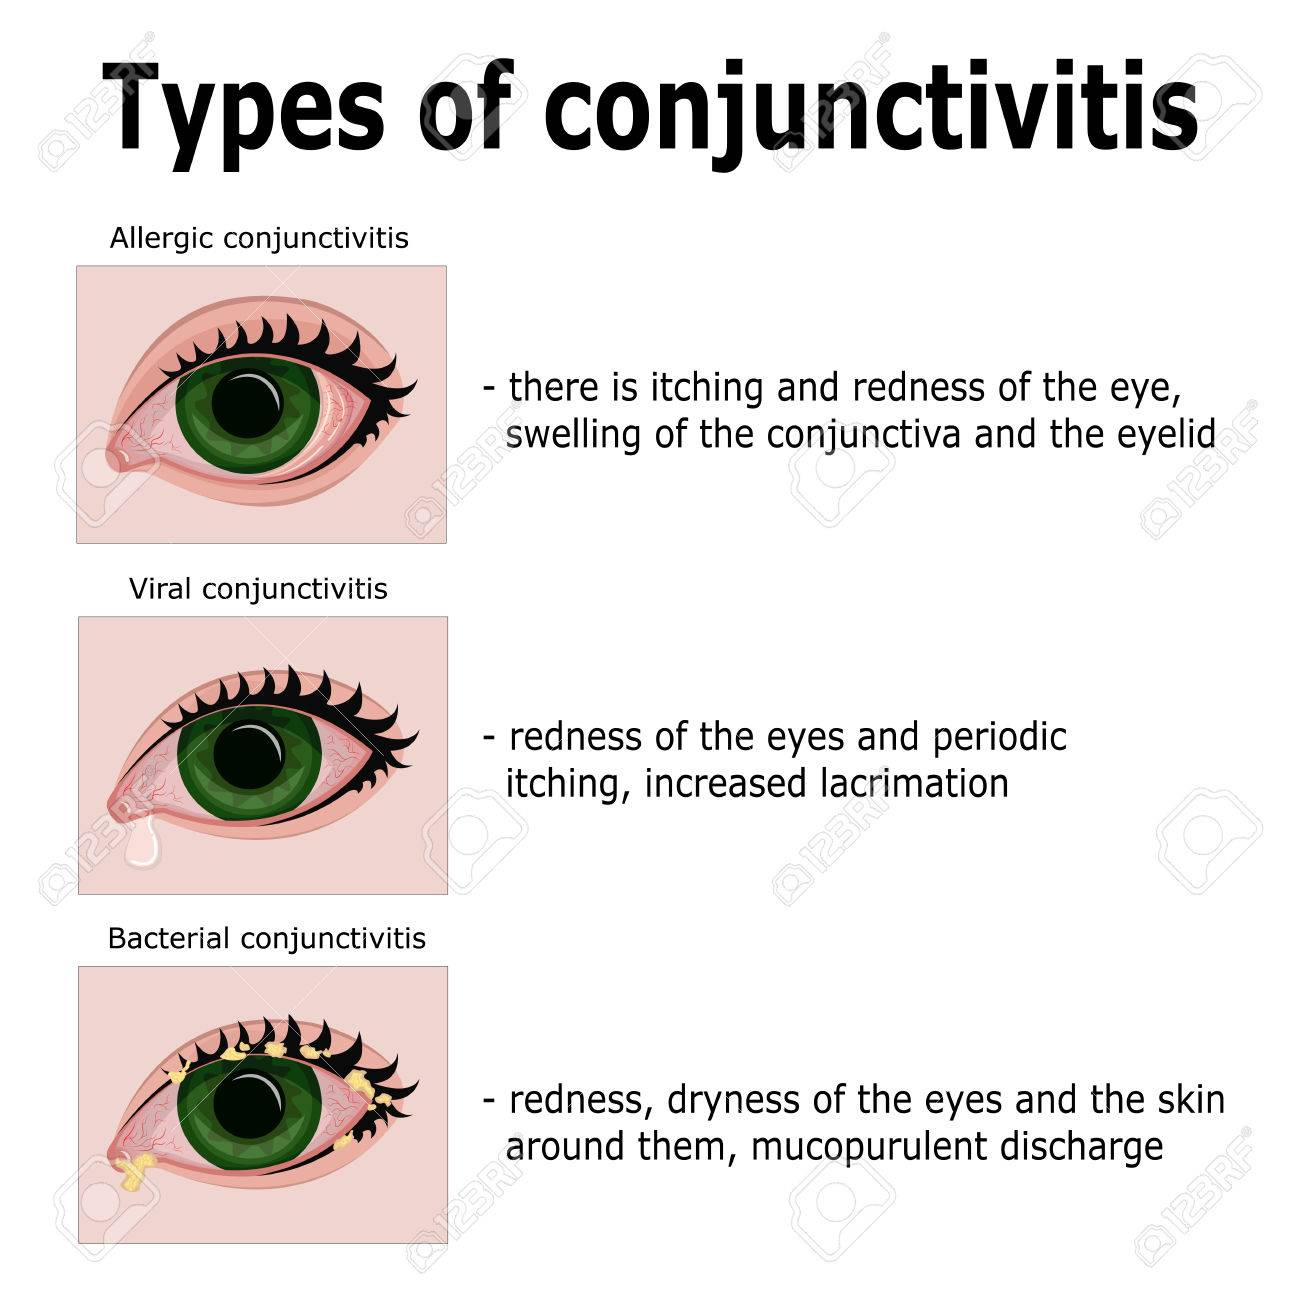 Types of Conjuctivitis.jpg